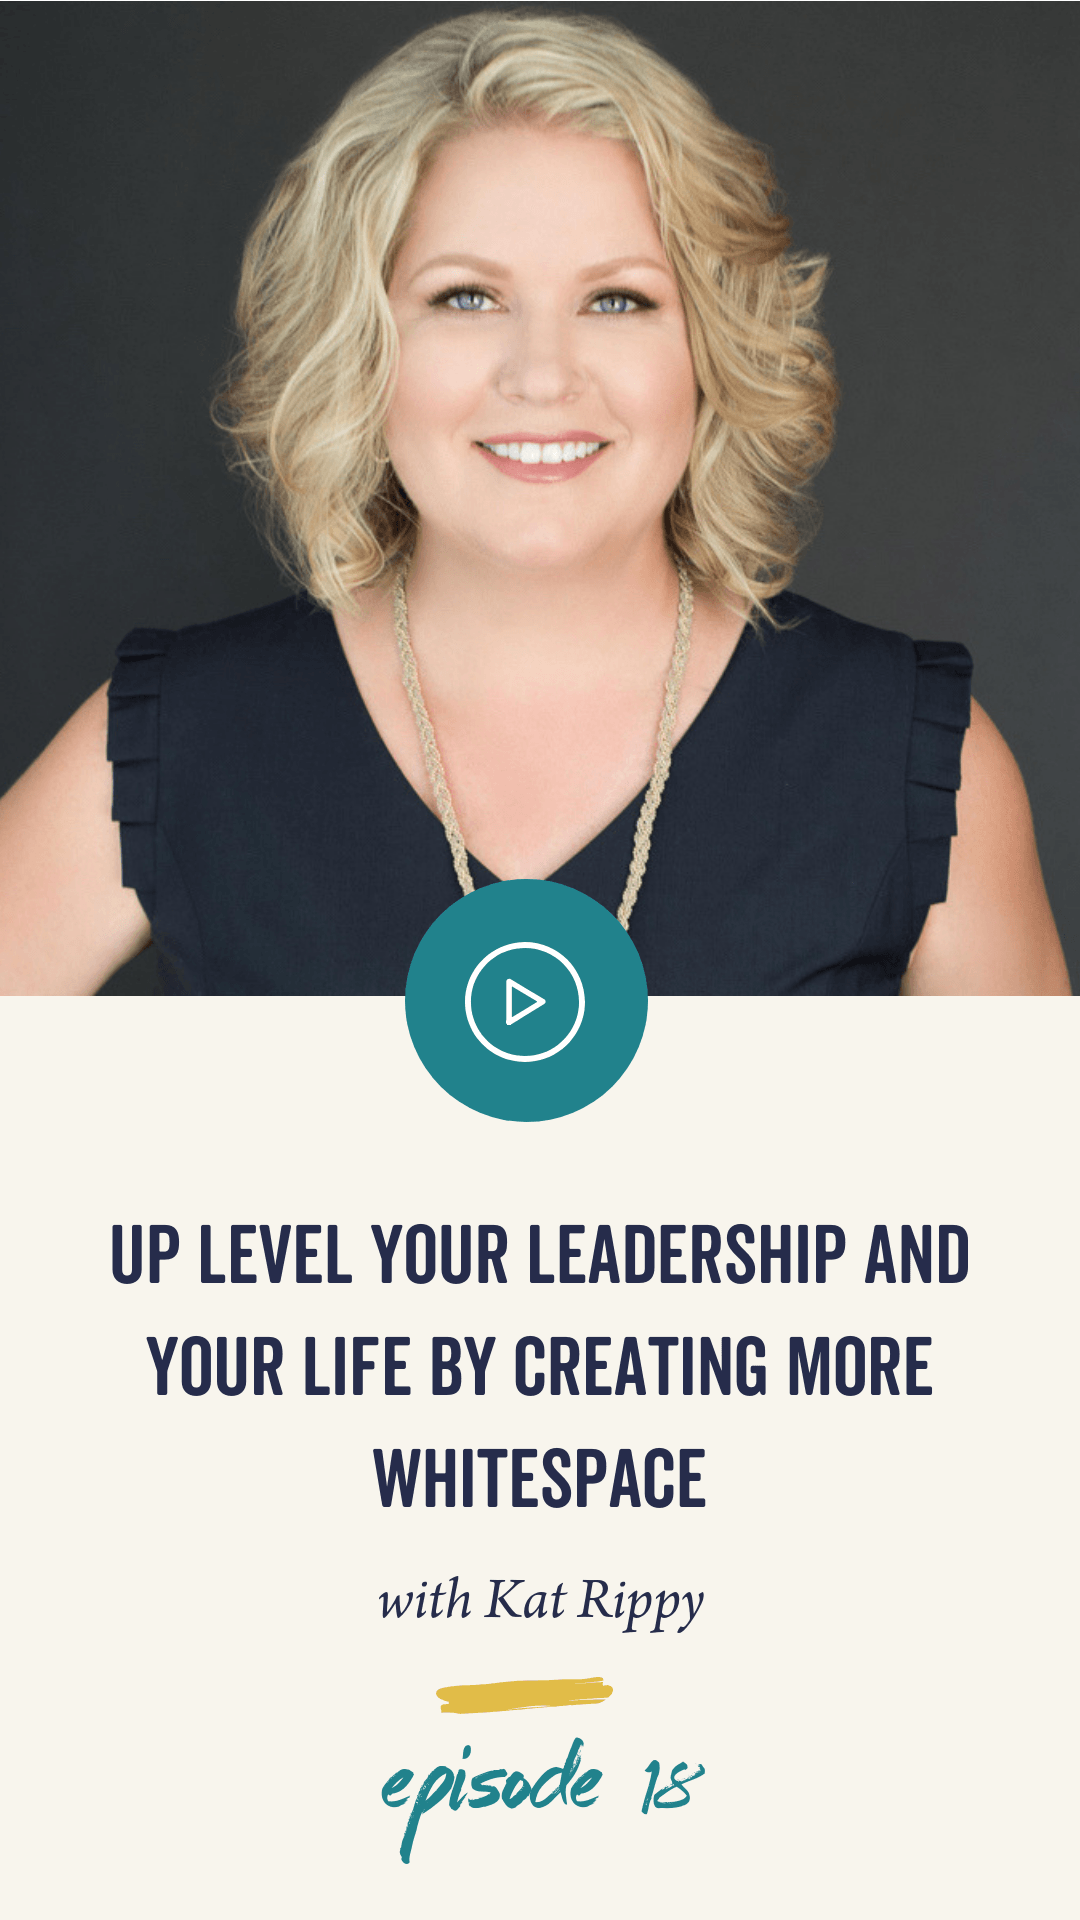 Episode 18: Up Level Your Leadership and Your Life by Creating More Whitespace